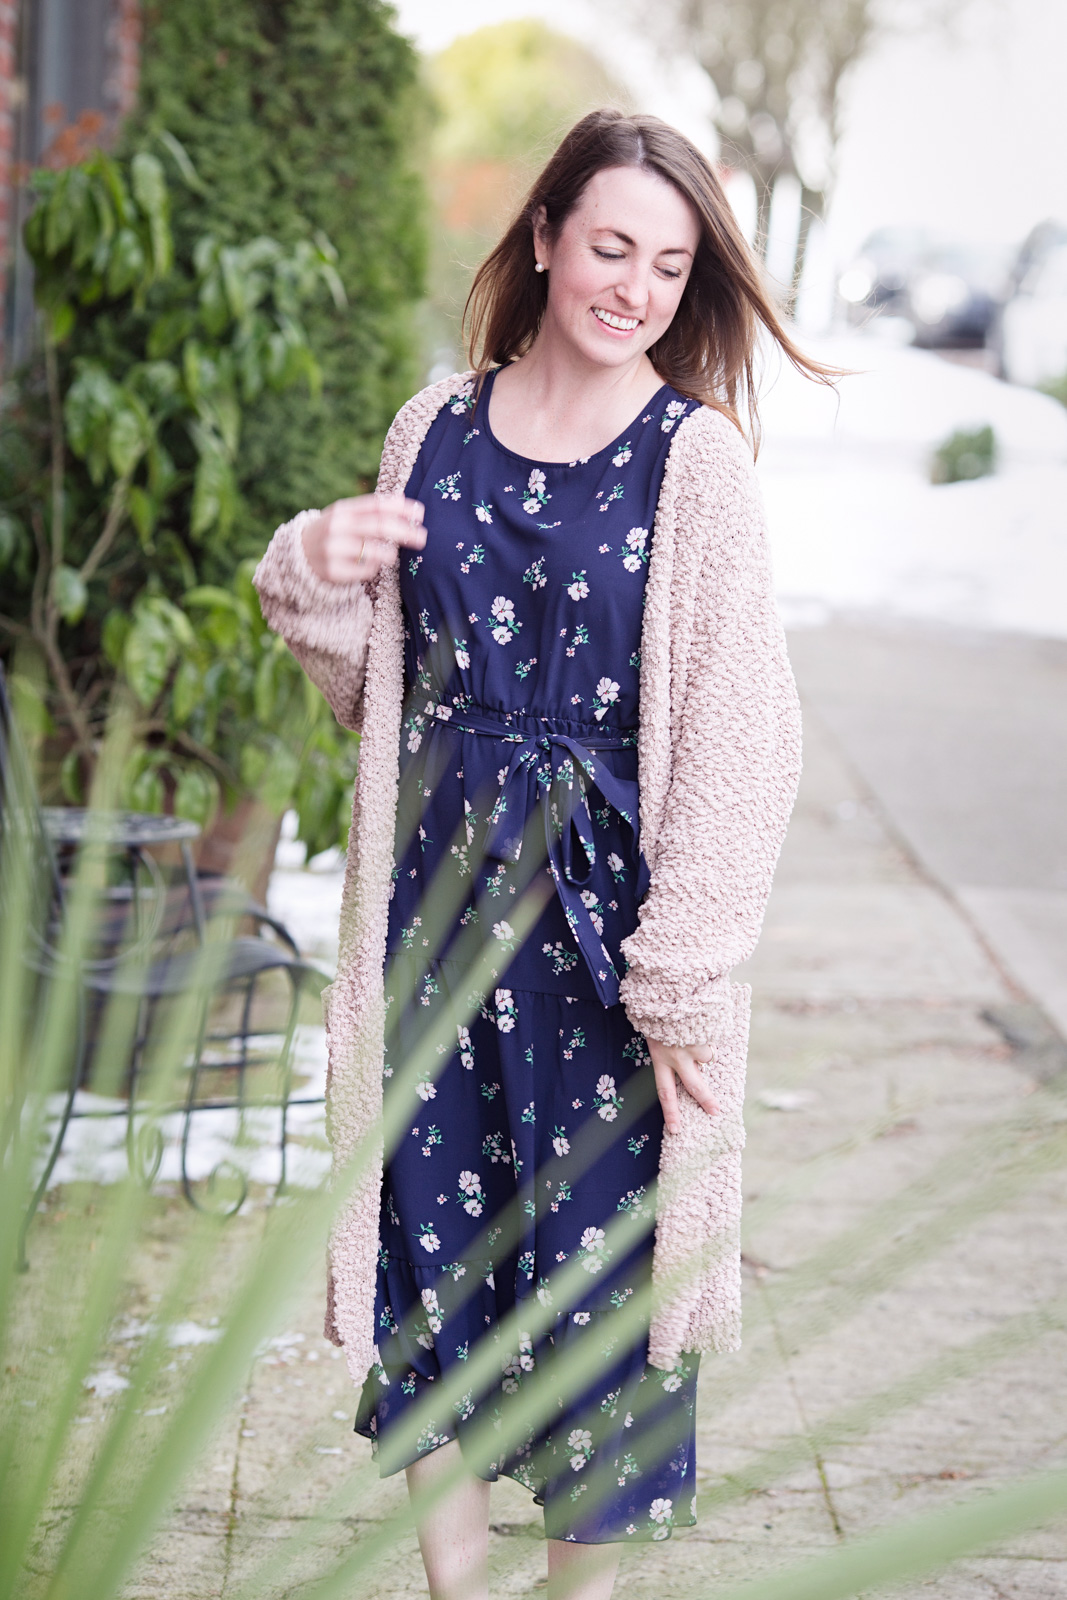 Meadow boutique seattle retail clothing store Yuliya Rae photography branding services-22.jpg